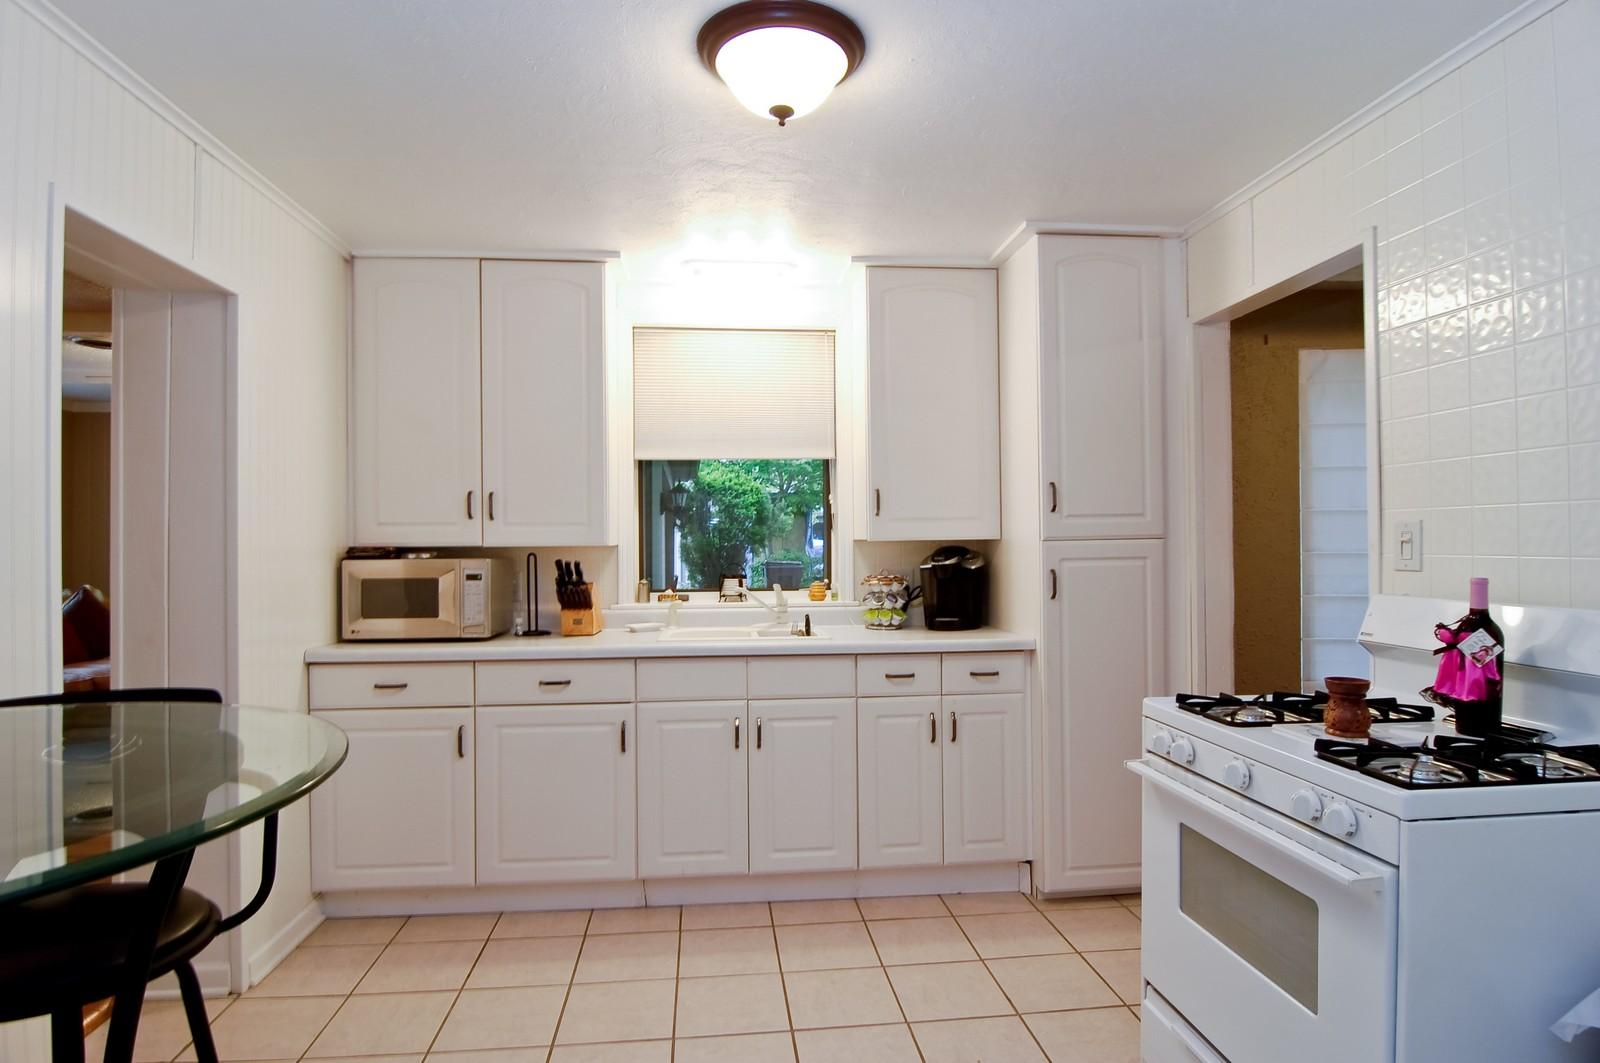 Real Estate Photography - 1040 S Columbine St, Lombard, IL, 60148 - Kitchen